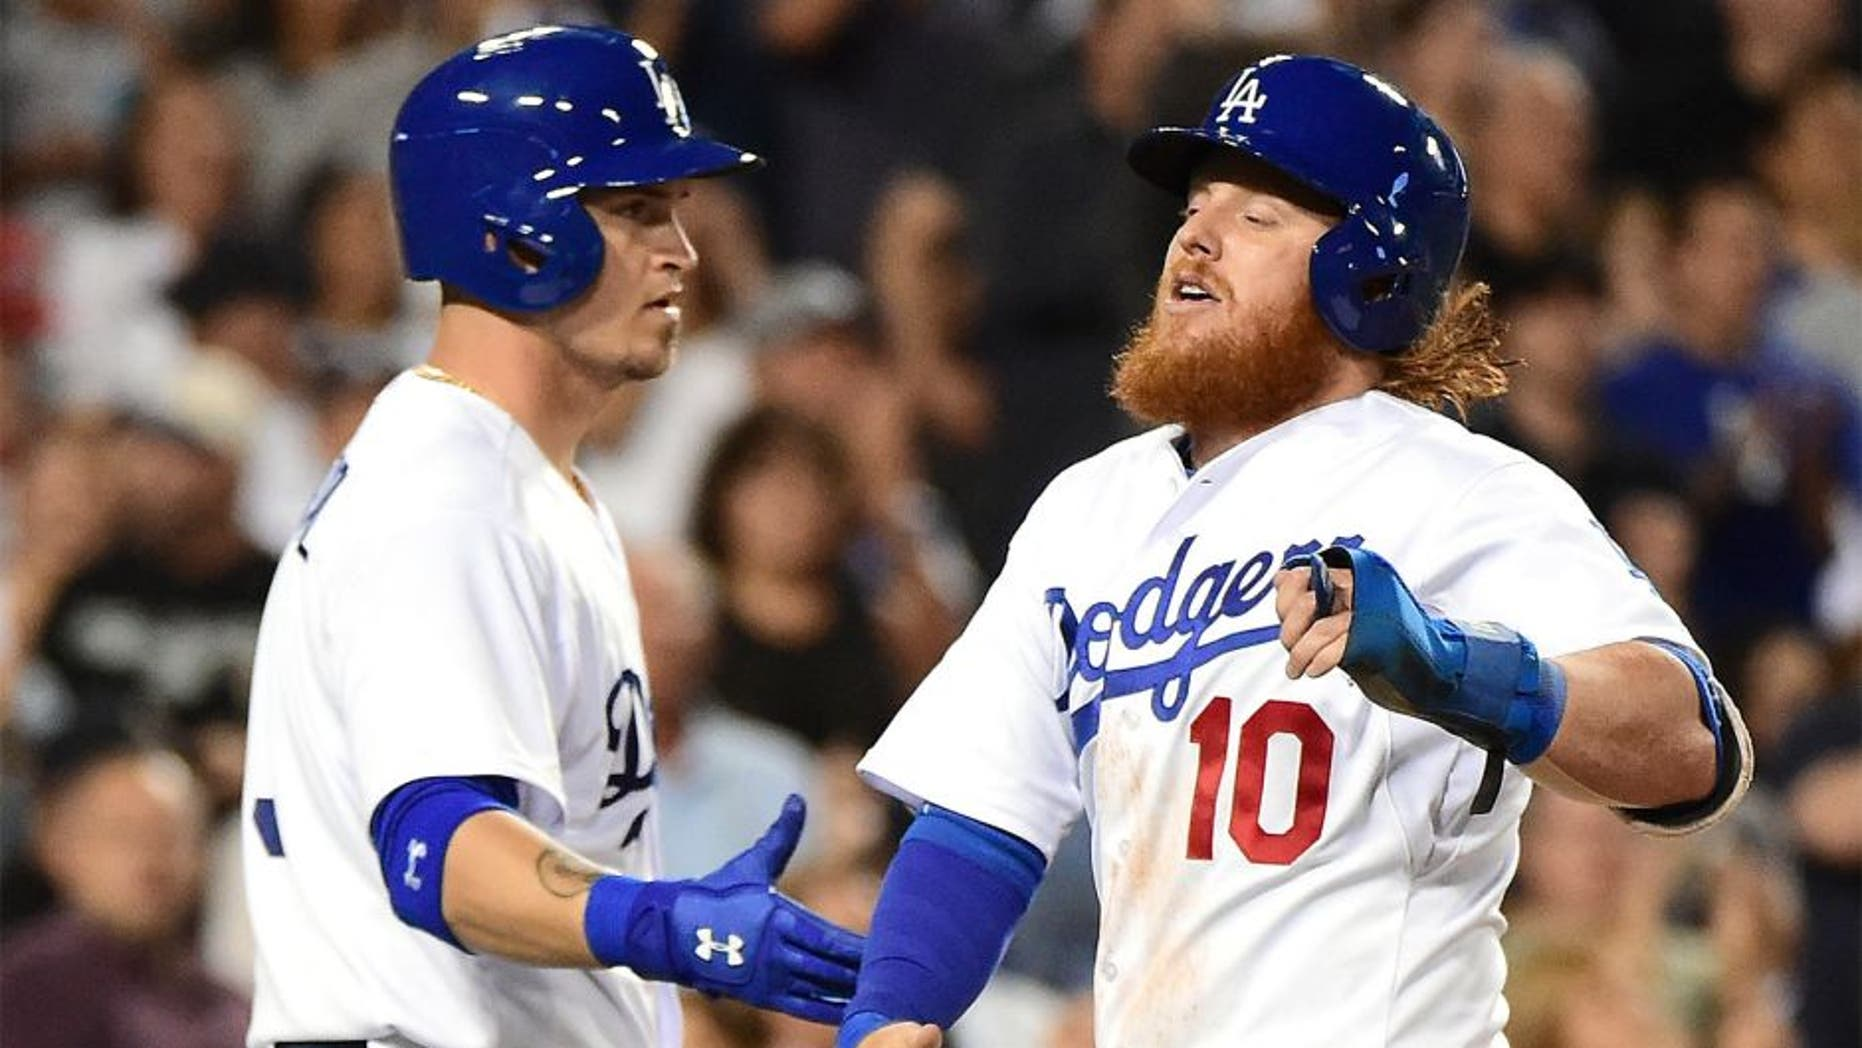 LOS ANGELES, CA - SEPTEMBER 02: Justin Turner #10 of the Los Angeles Dodgers celebrates his run with Yasmani Grandal #9 to take a 1-0 lead over the San Francisco Giants during the second inning at Dodger Stadium on September 2, 2015 in Los Angeles, California. (Photo by Harry How/Getty Images)